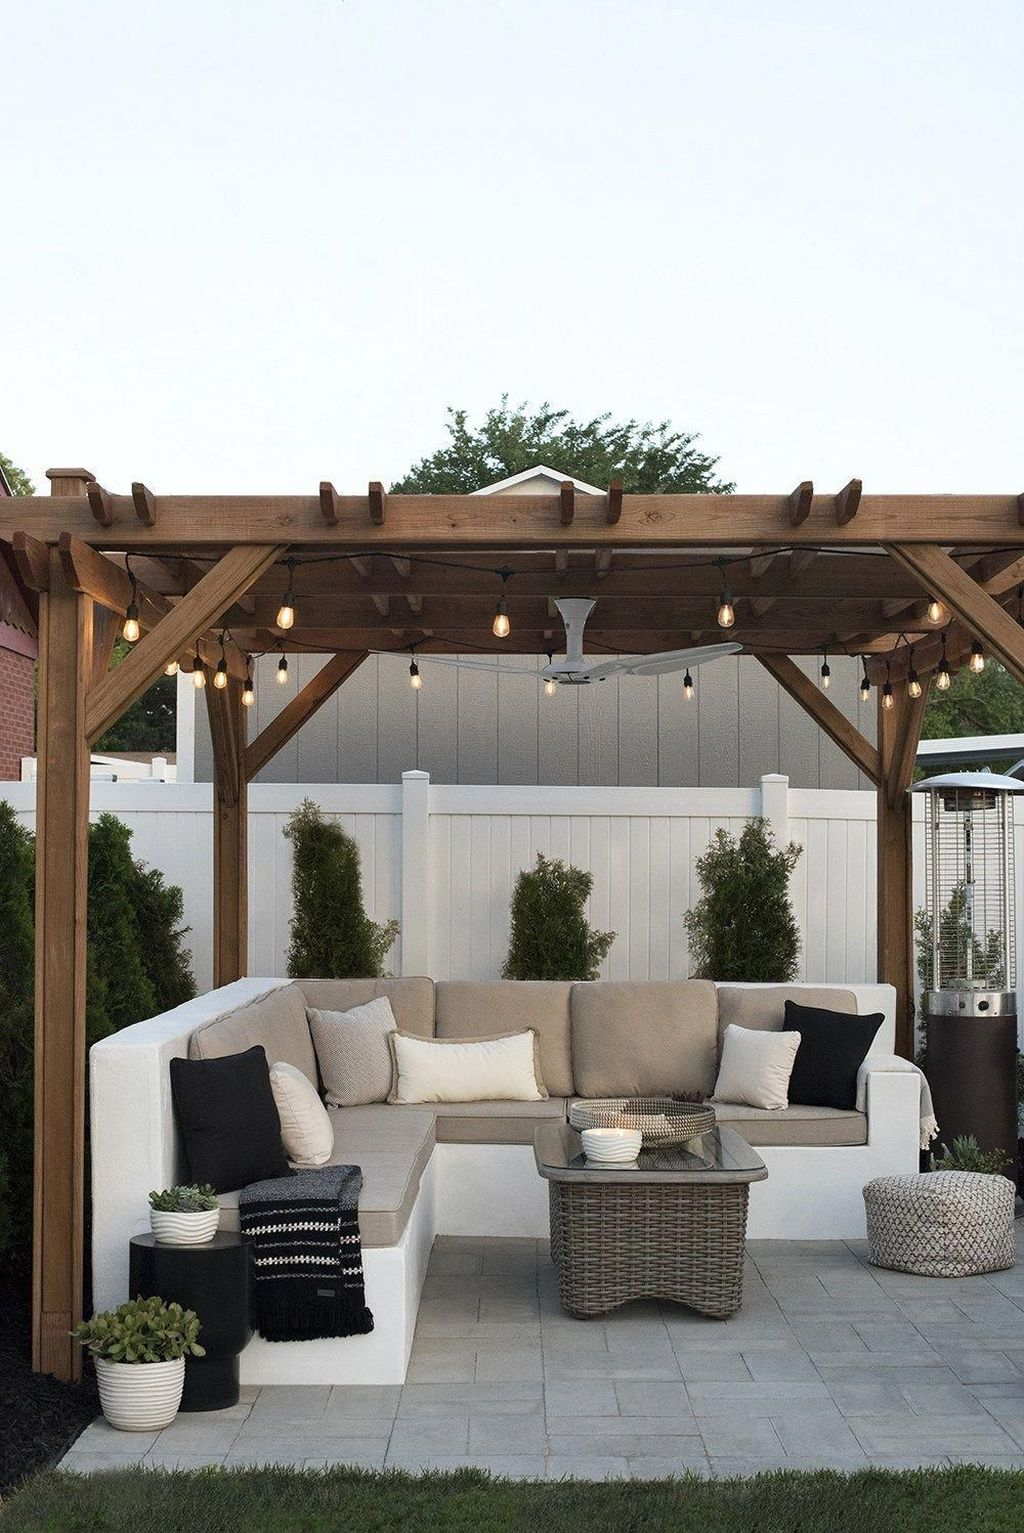 Admirable Cozy Patio Design Ideas To Relaxing On A Sunny Day 06